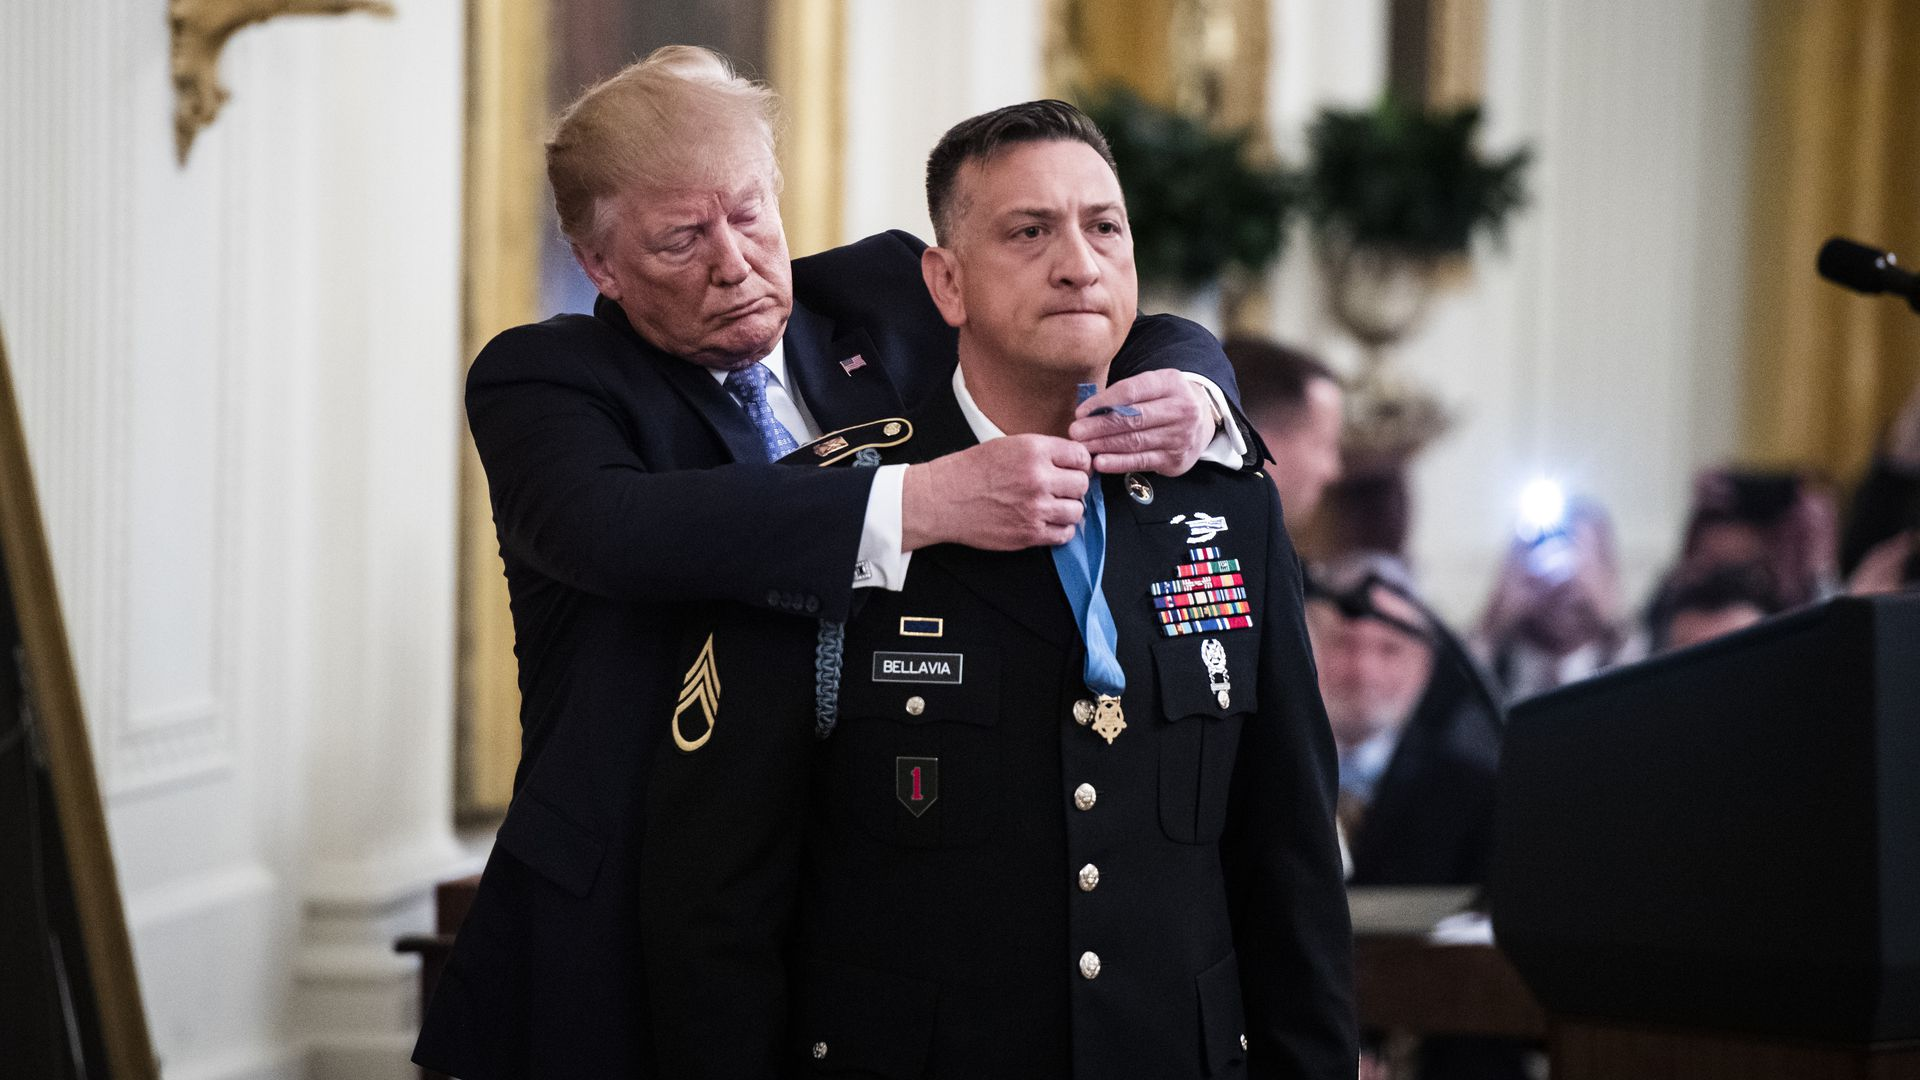 President Donald J. Trump participates in a ceremony to award the Medal of Honor to Army Staff Sgt. David Bellavia in the East Room at the White House on Tuesday, June 25, 2019 in Washington, DC.